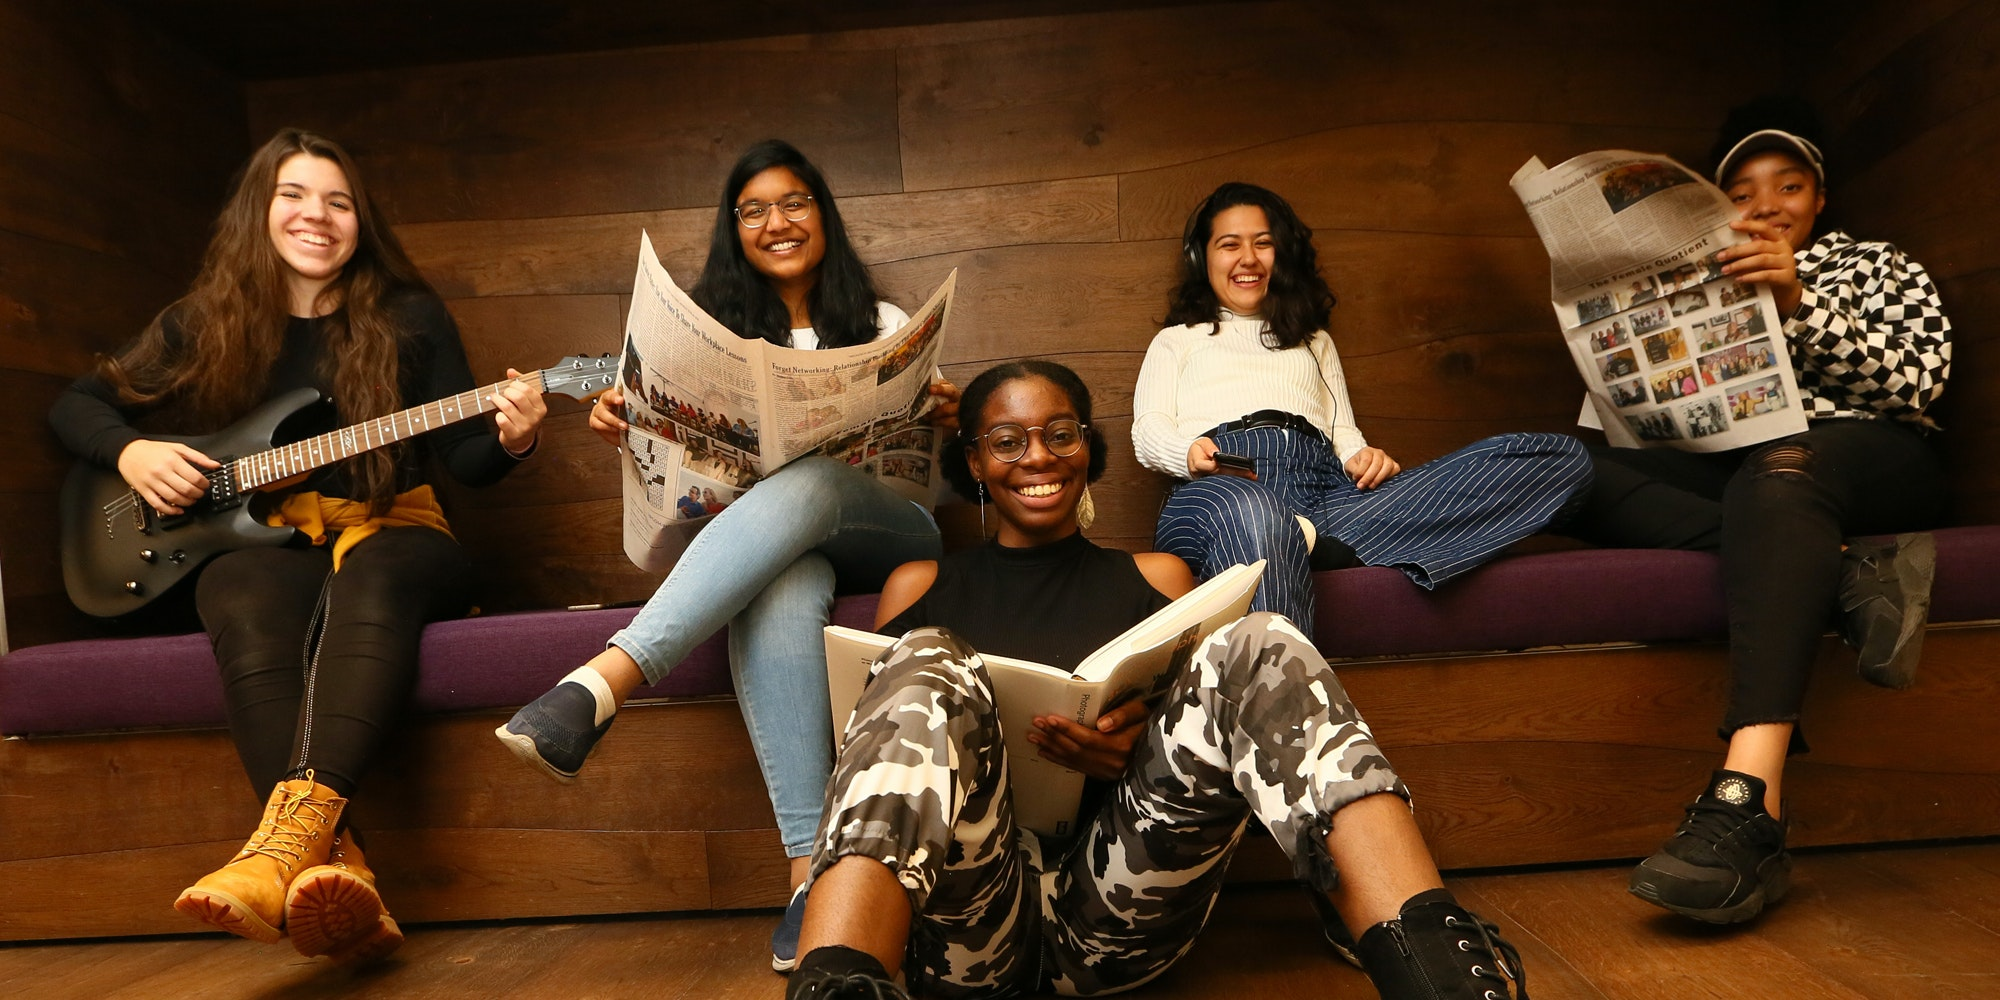 5 different ethnic girls in the picture holding books (sitting on the front floor) and holding guitar and newspaper (sitting on the back couch)